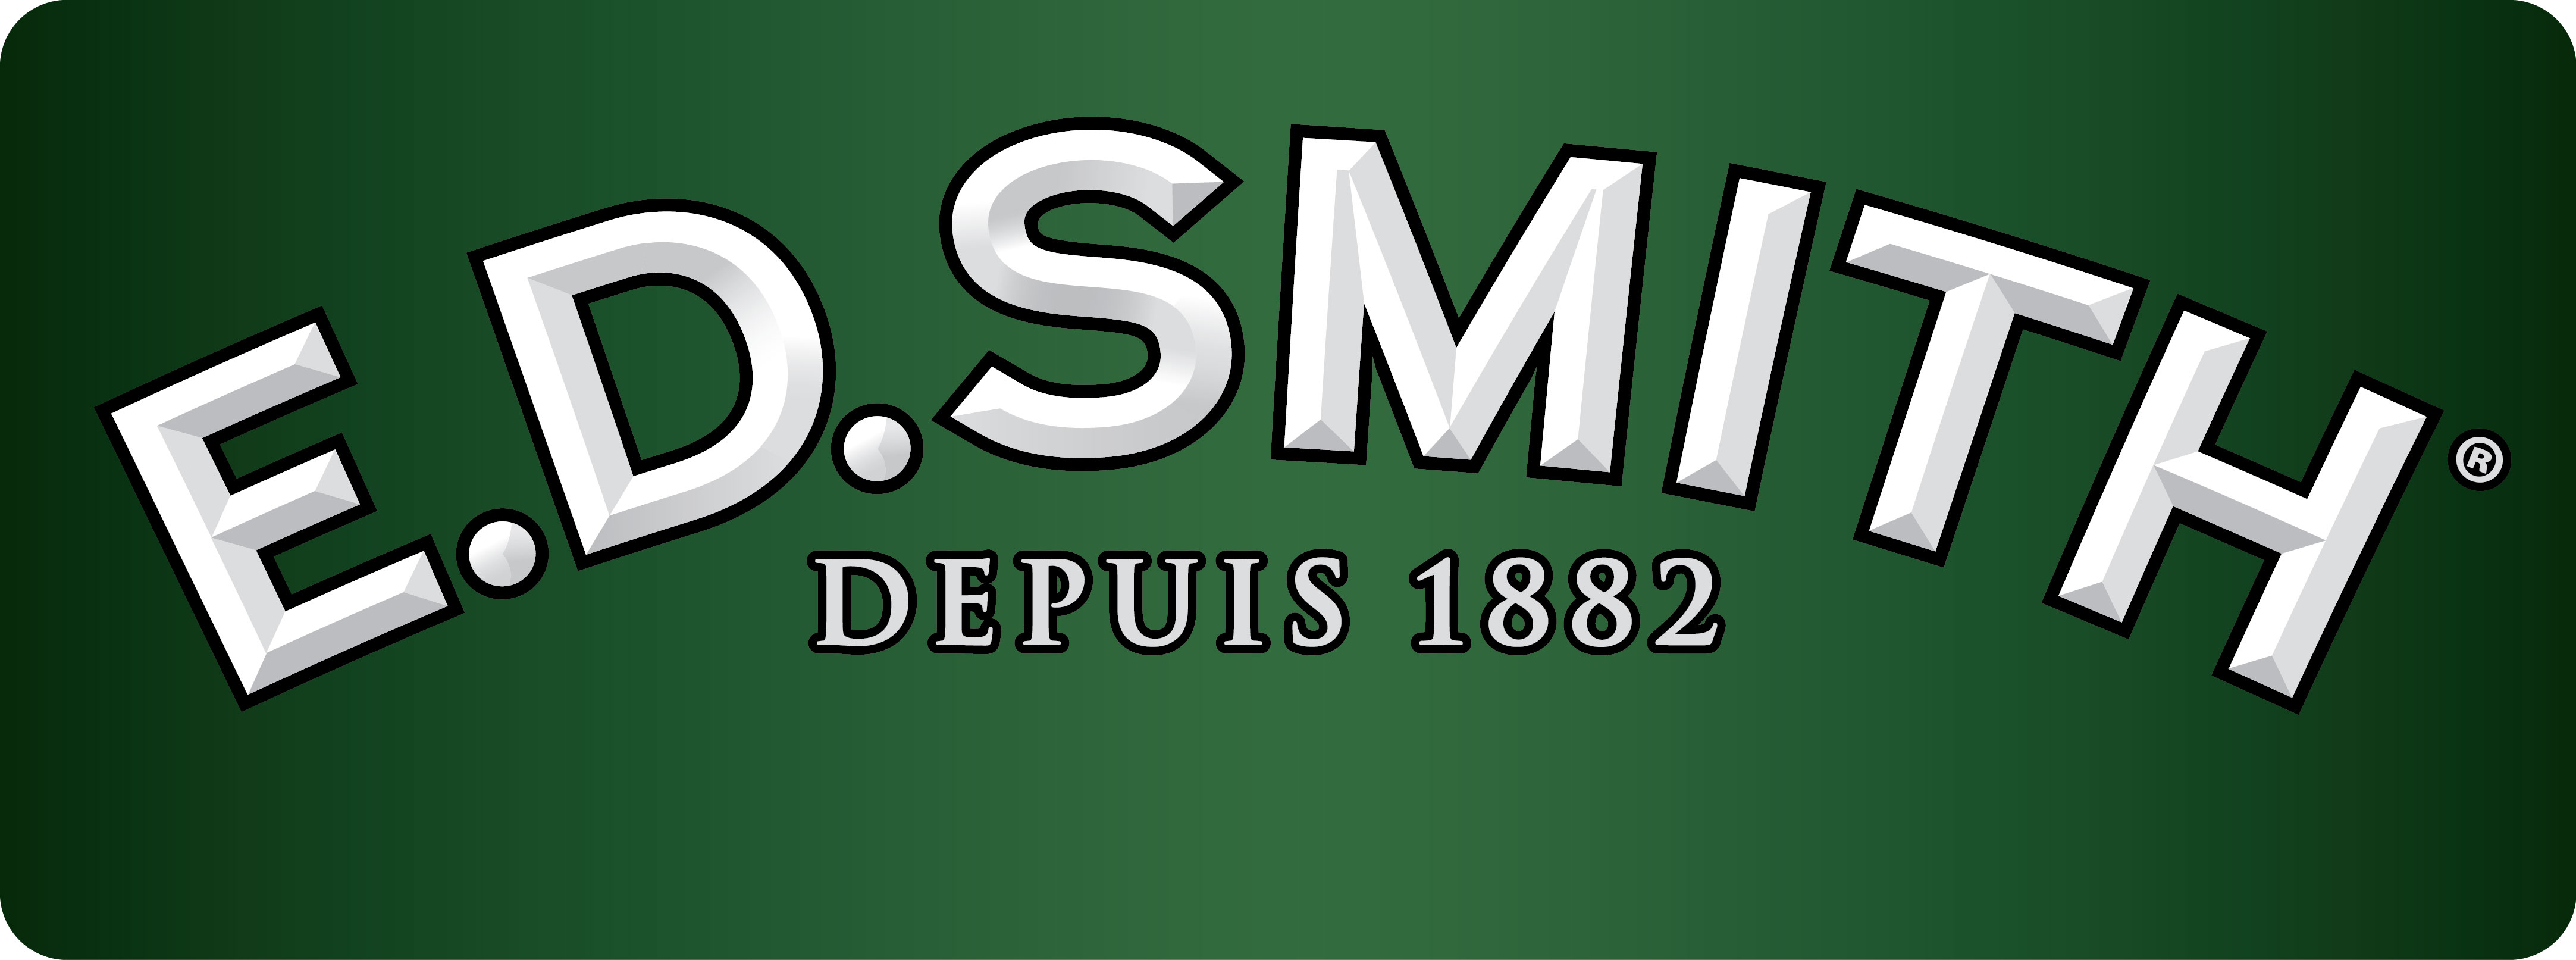 EDSmith_Logo_Fre_OnGreenBox